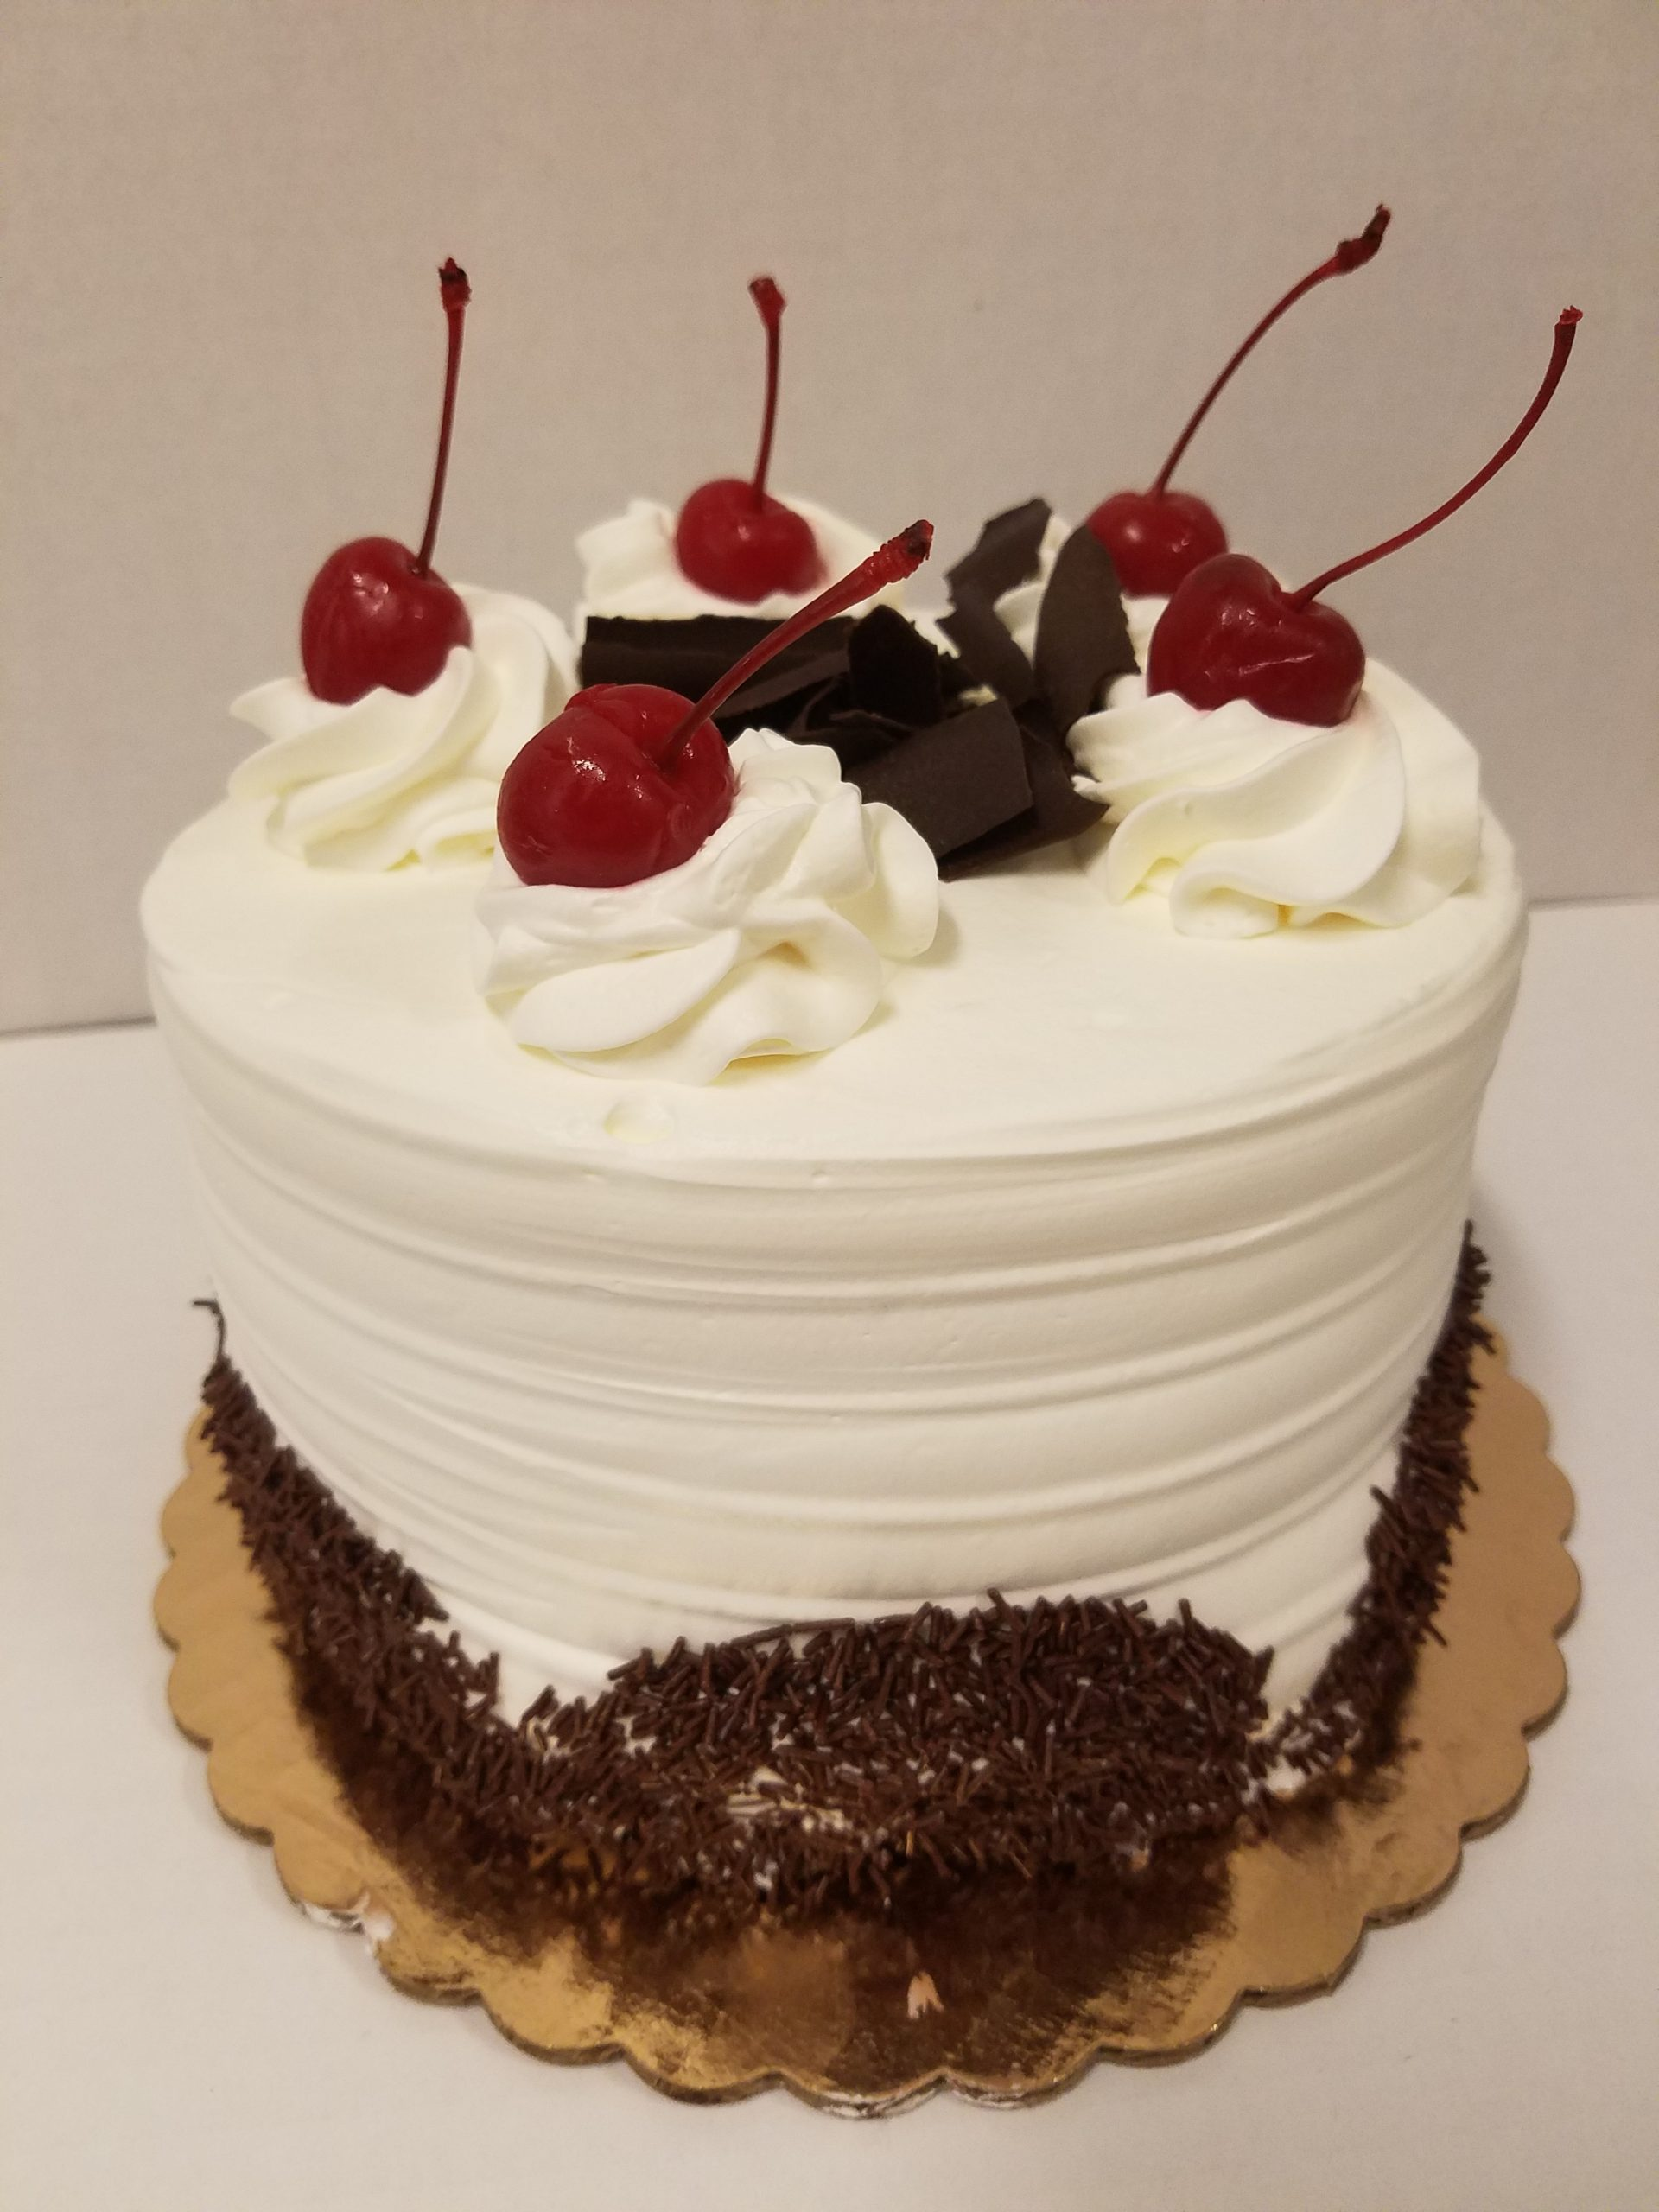 Black Forest updated 12-5-20